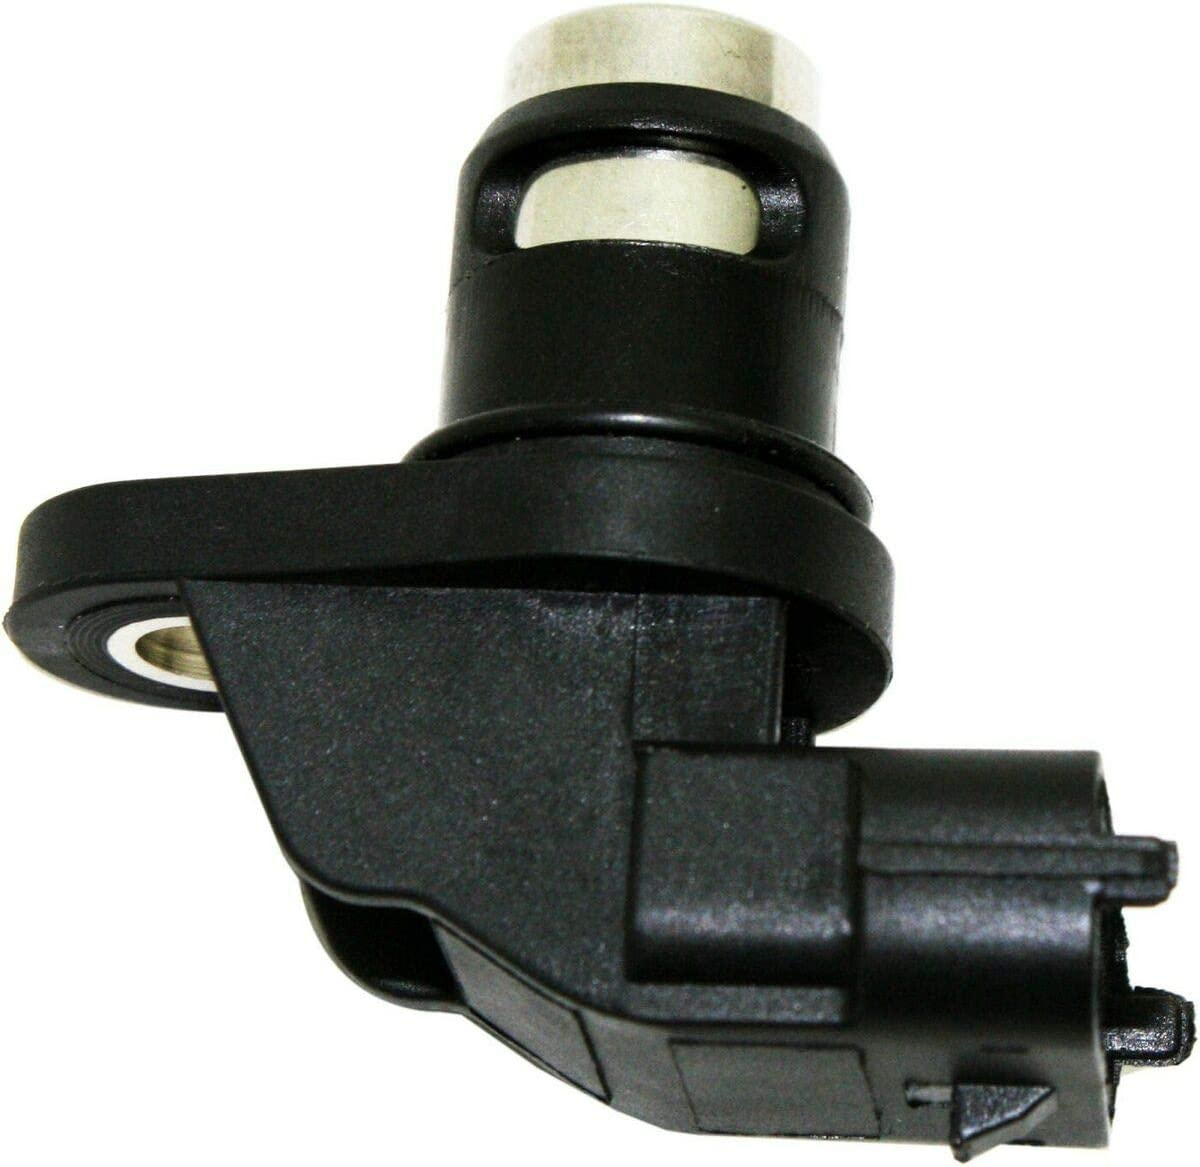 New Replacement for OE Engine Camshaft Position Sensor fits 1998-2005 Mercedes W140 W203 W208 W209 W210